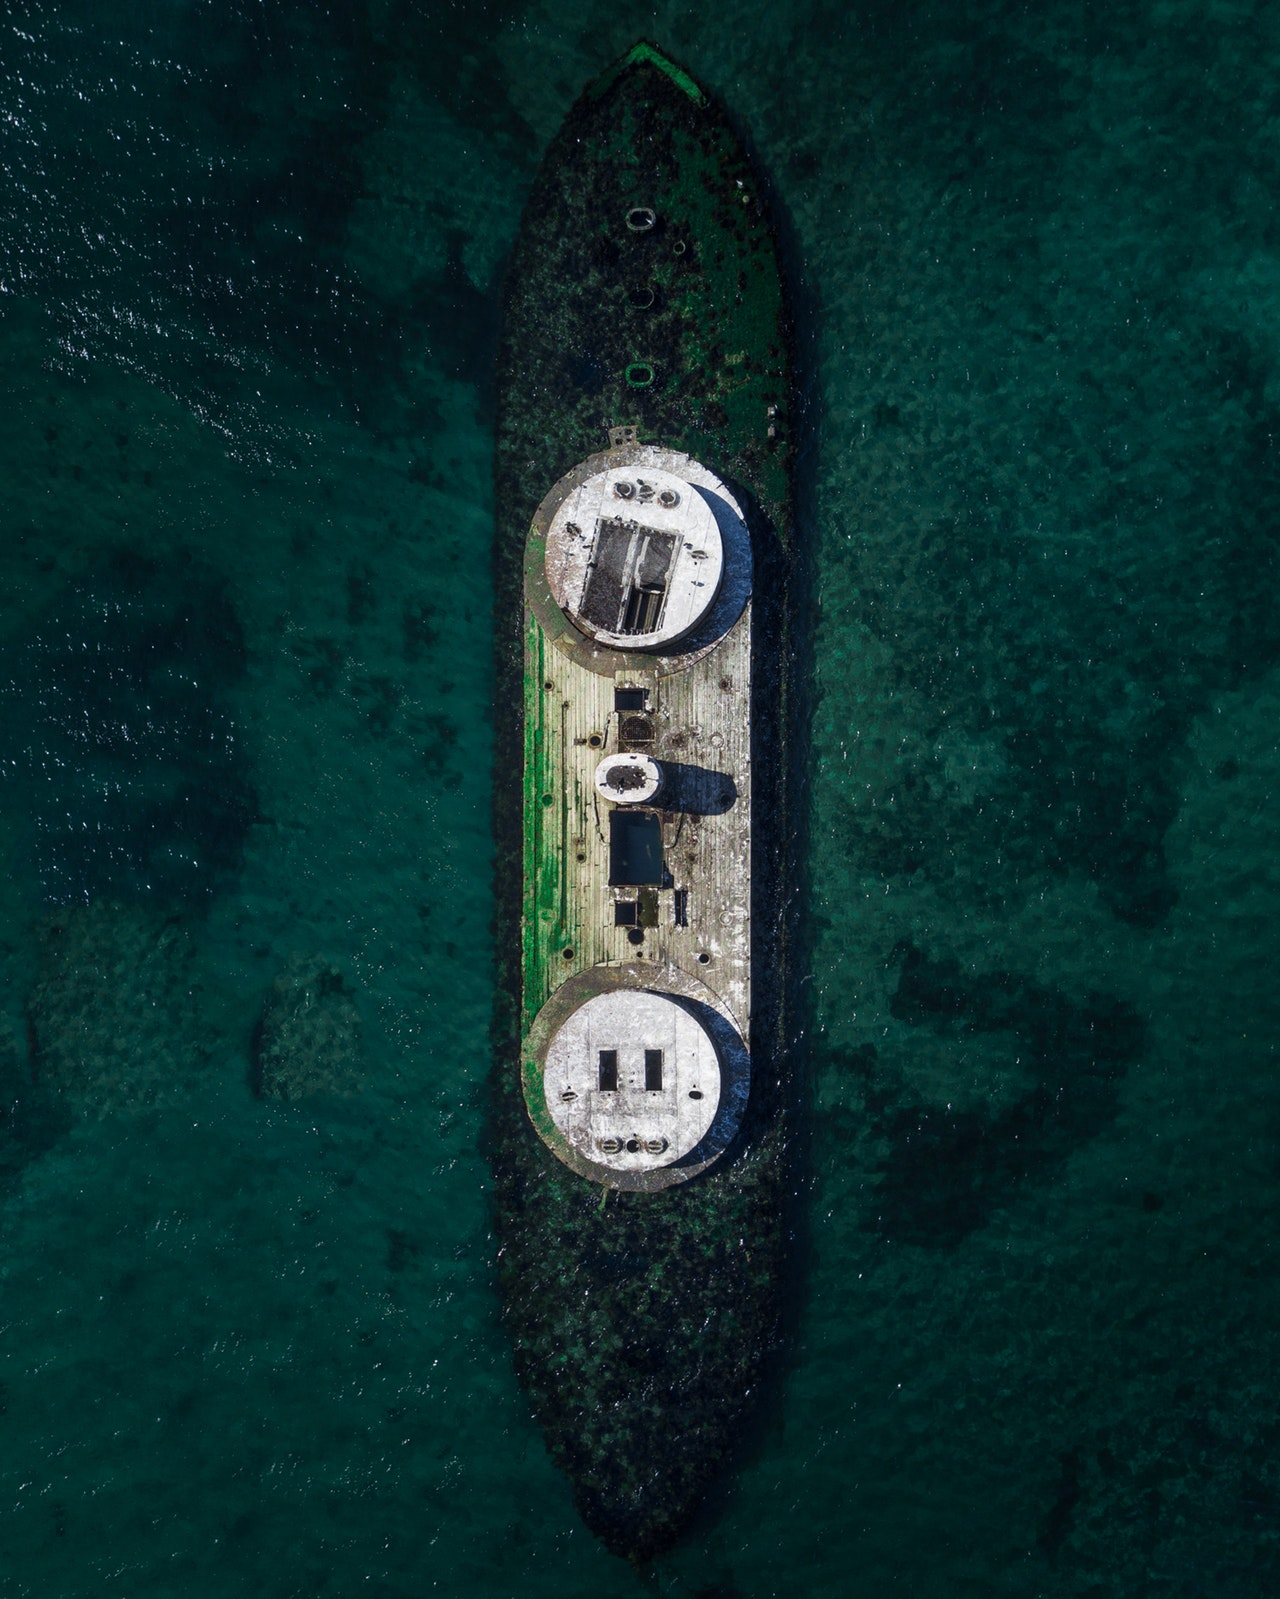 aerial-photography-of-boat-in-water-1556909.jpg